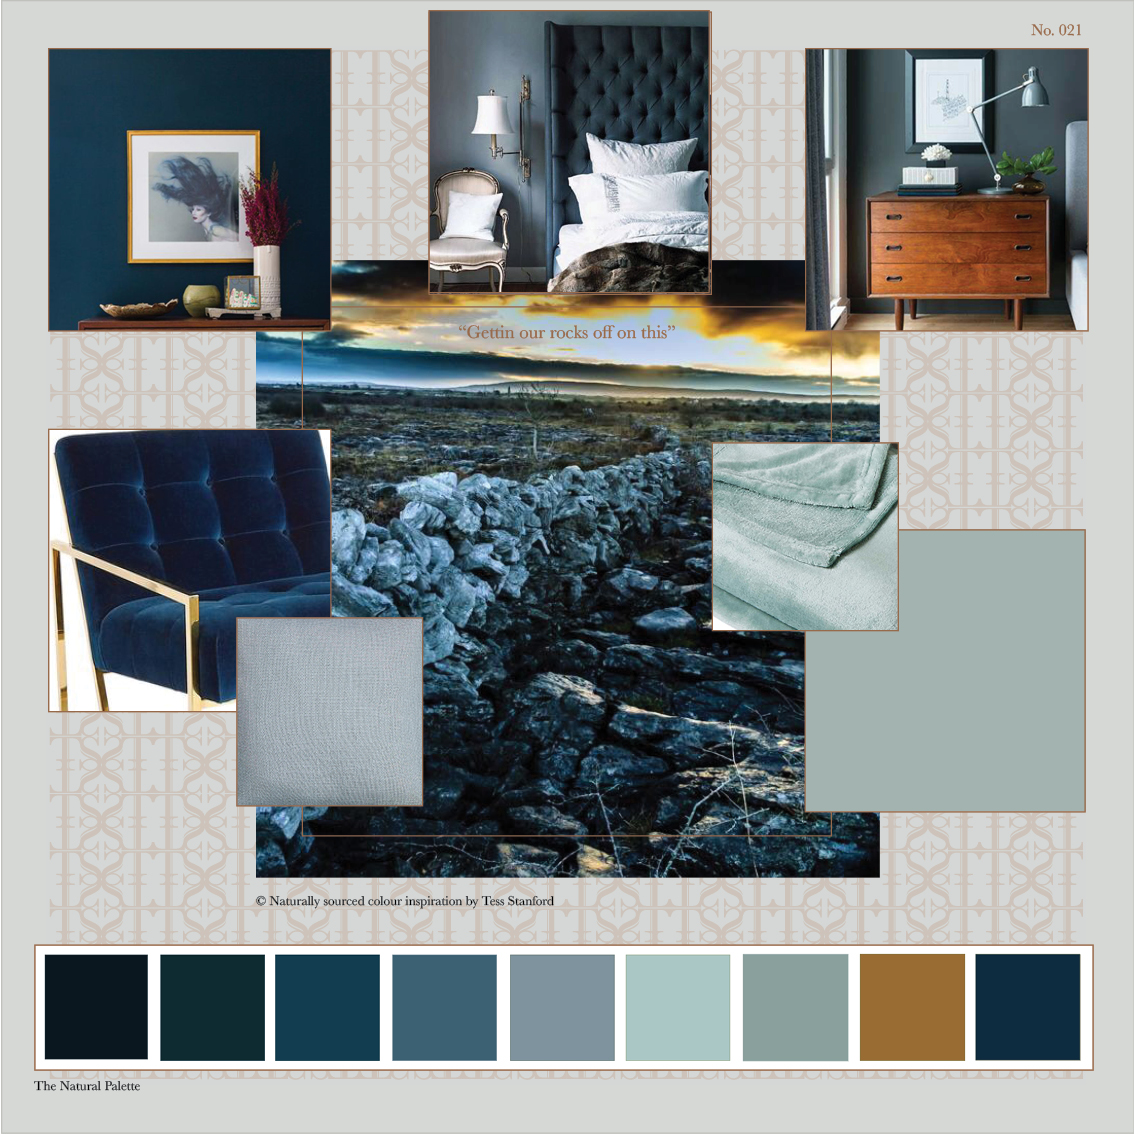 Tess Stanford Interior Design Colour Inspiration Blog No 021